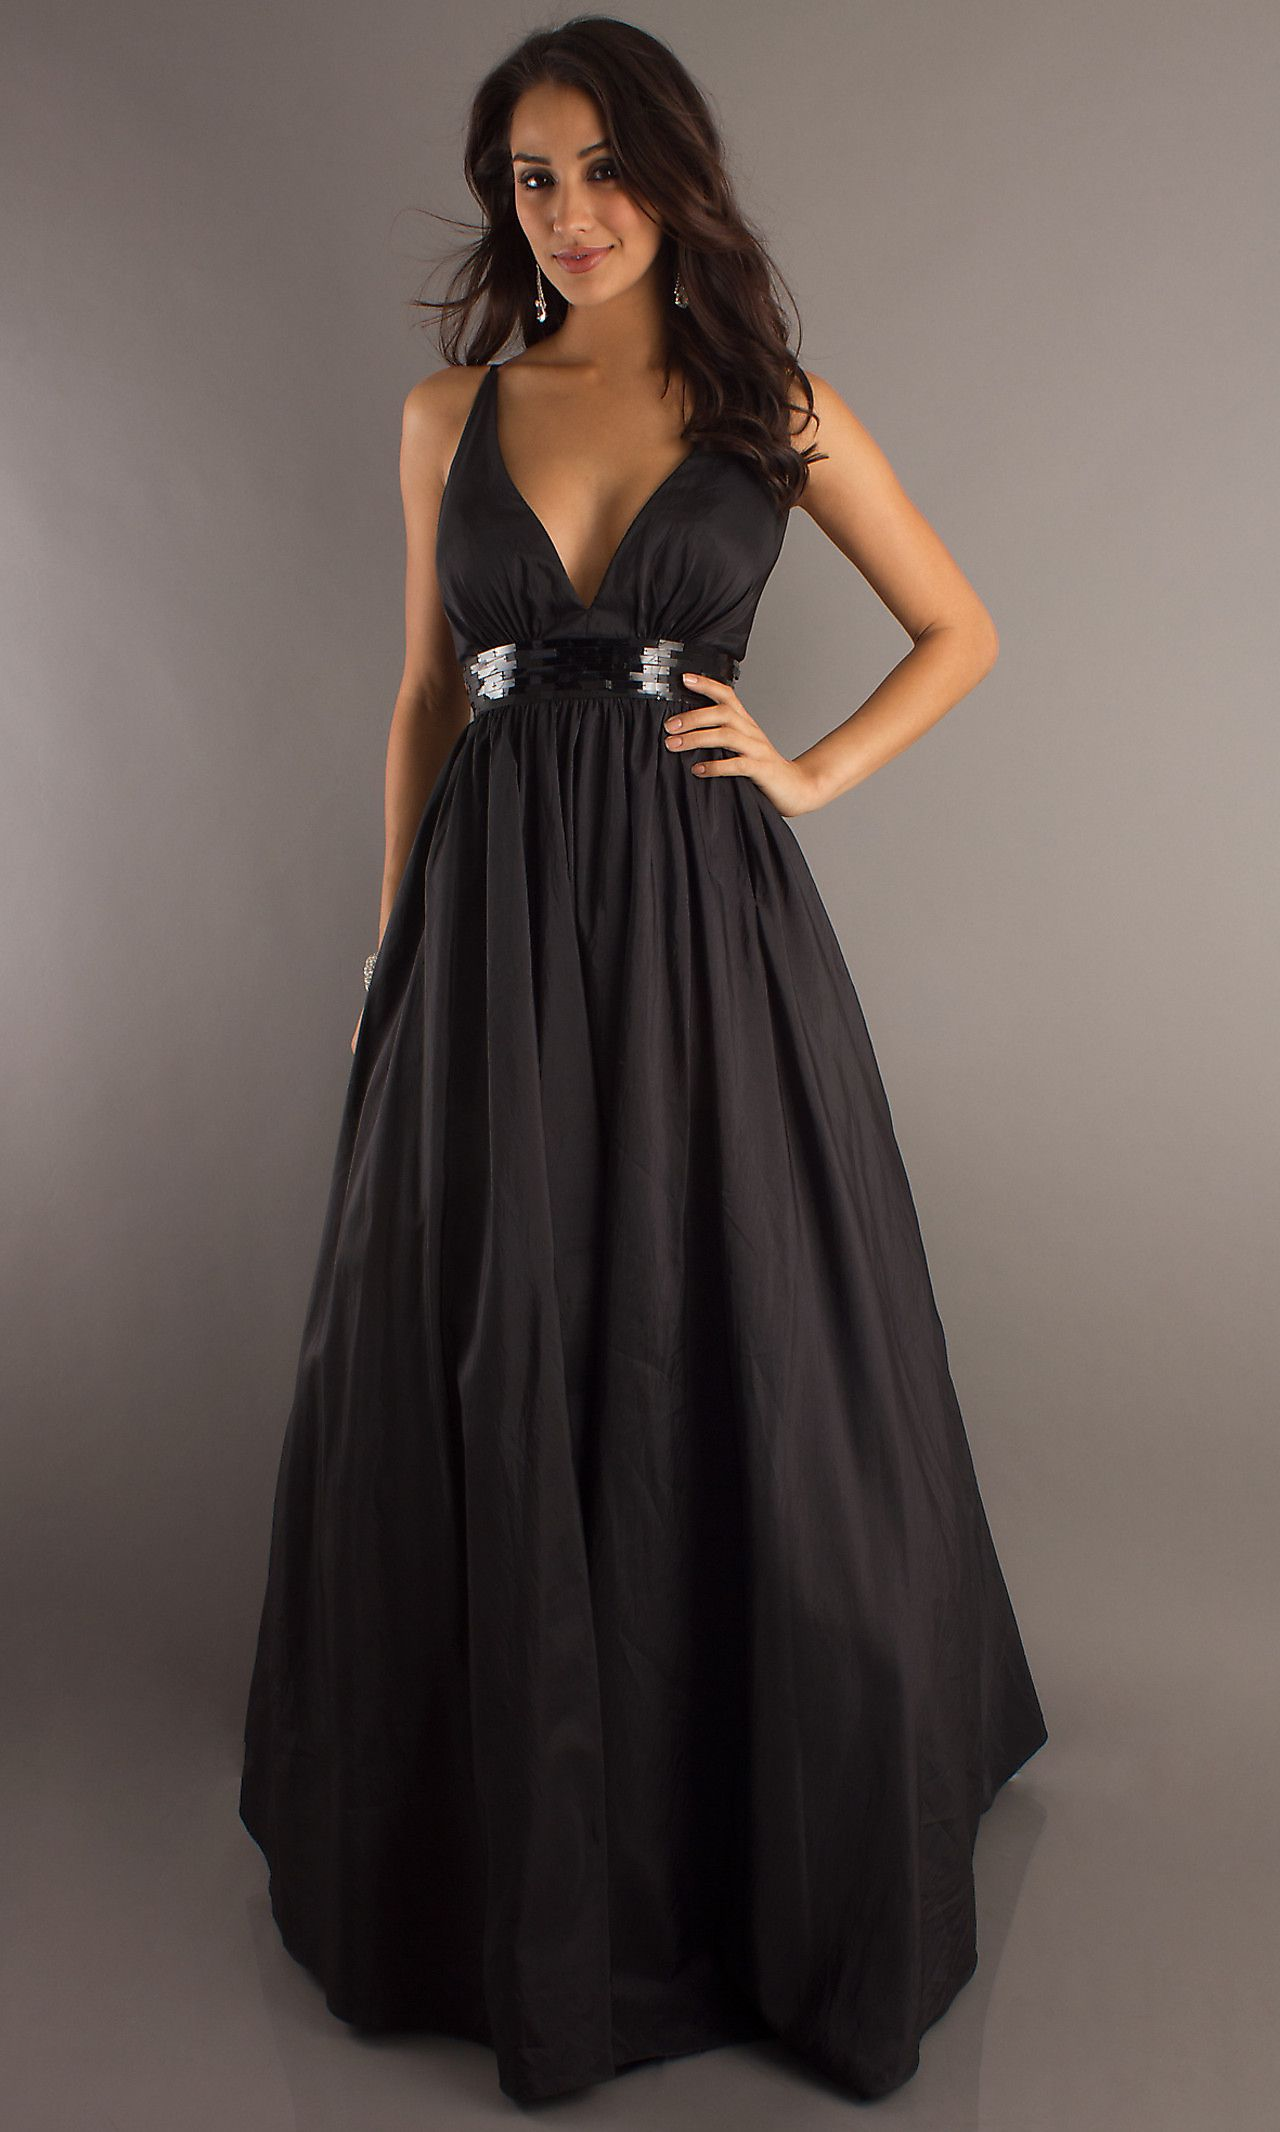 Black Ball Gown, Sexy Low Cut Black Evening Gown - Simply Dresses ...